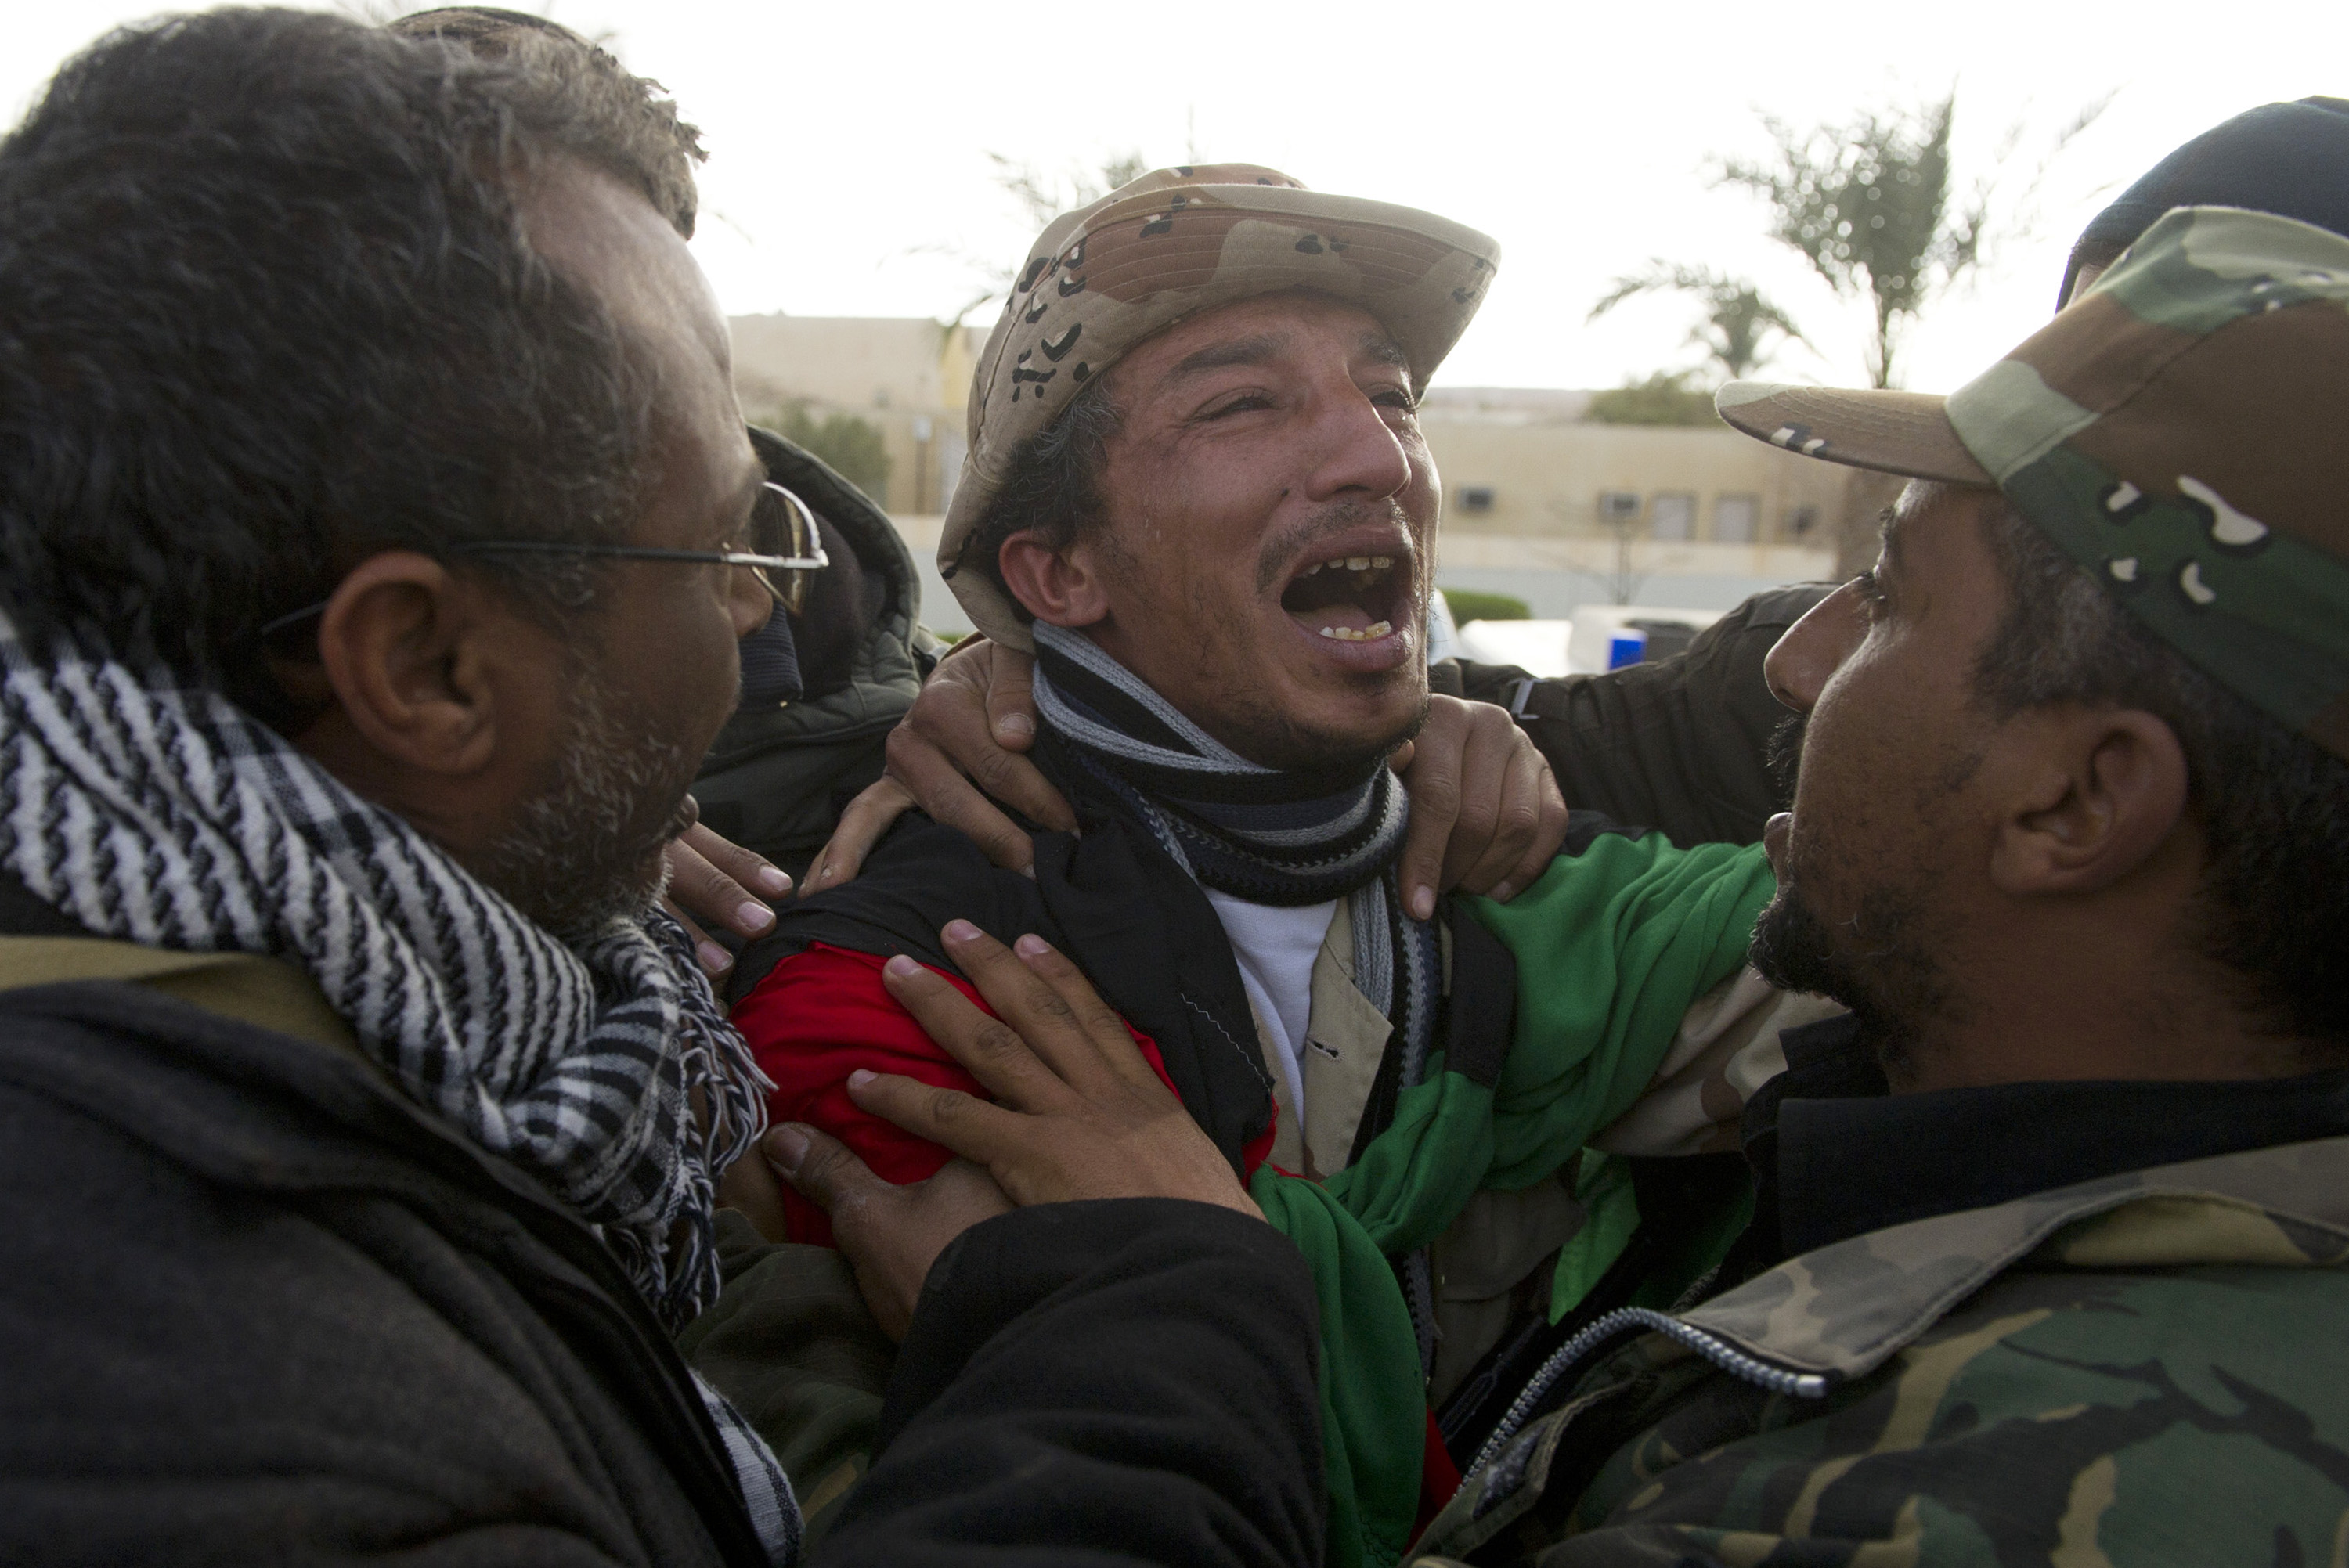 Opposition troops weep at the hospital in Ras Lanuf as soldiers are being brought in from the frontline west of Ras Lanuf during heavy fighting between troops loyal to Qaddafi in Ras Lanuf, in Eastern Libya, March 9, 2011. Dangerous confrontations have been going on between opposition forces and those loyal to Col. Qaddafi across Libya.